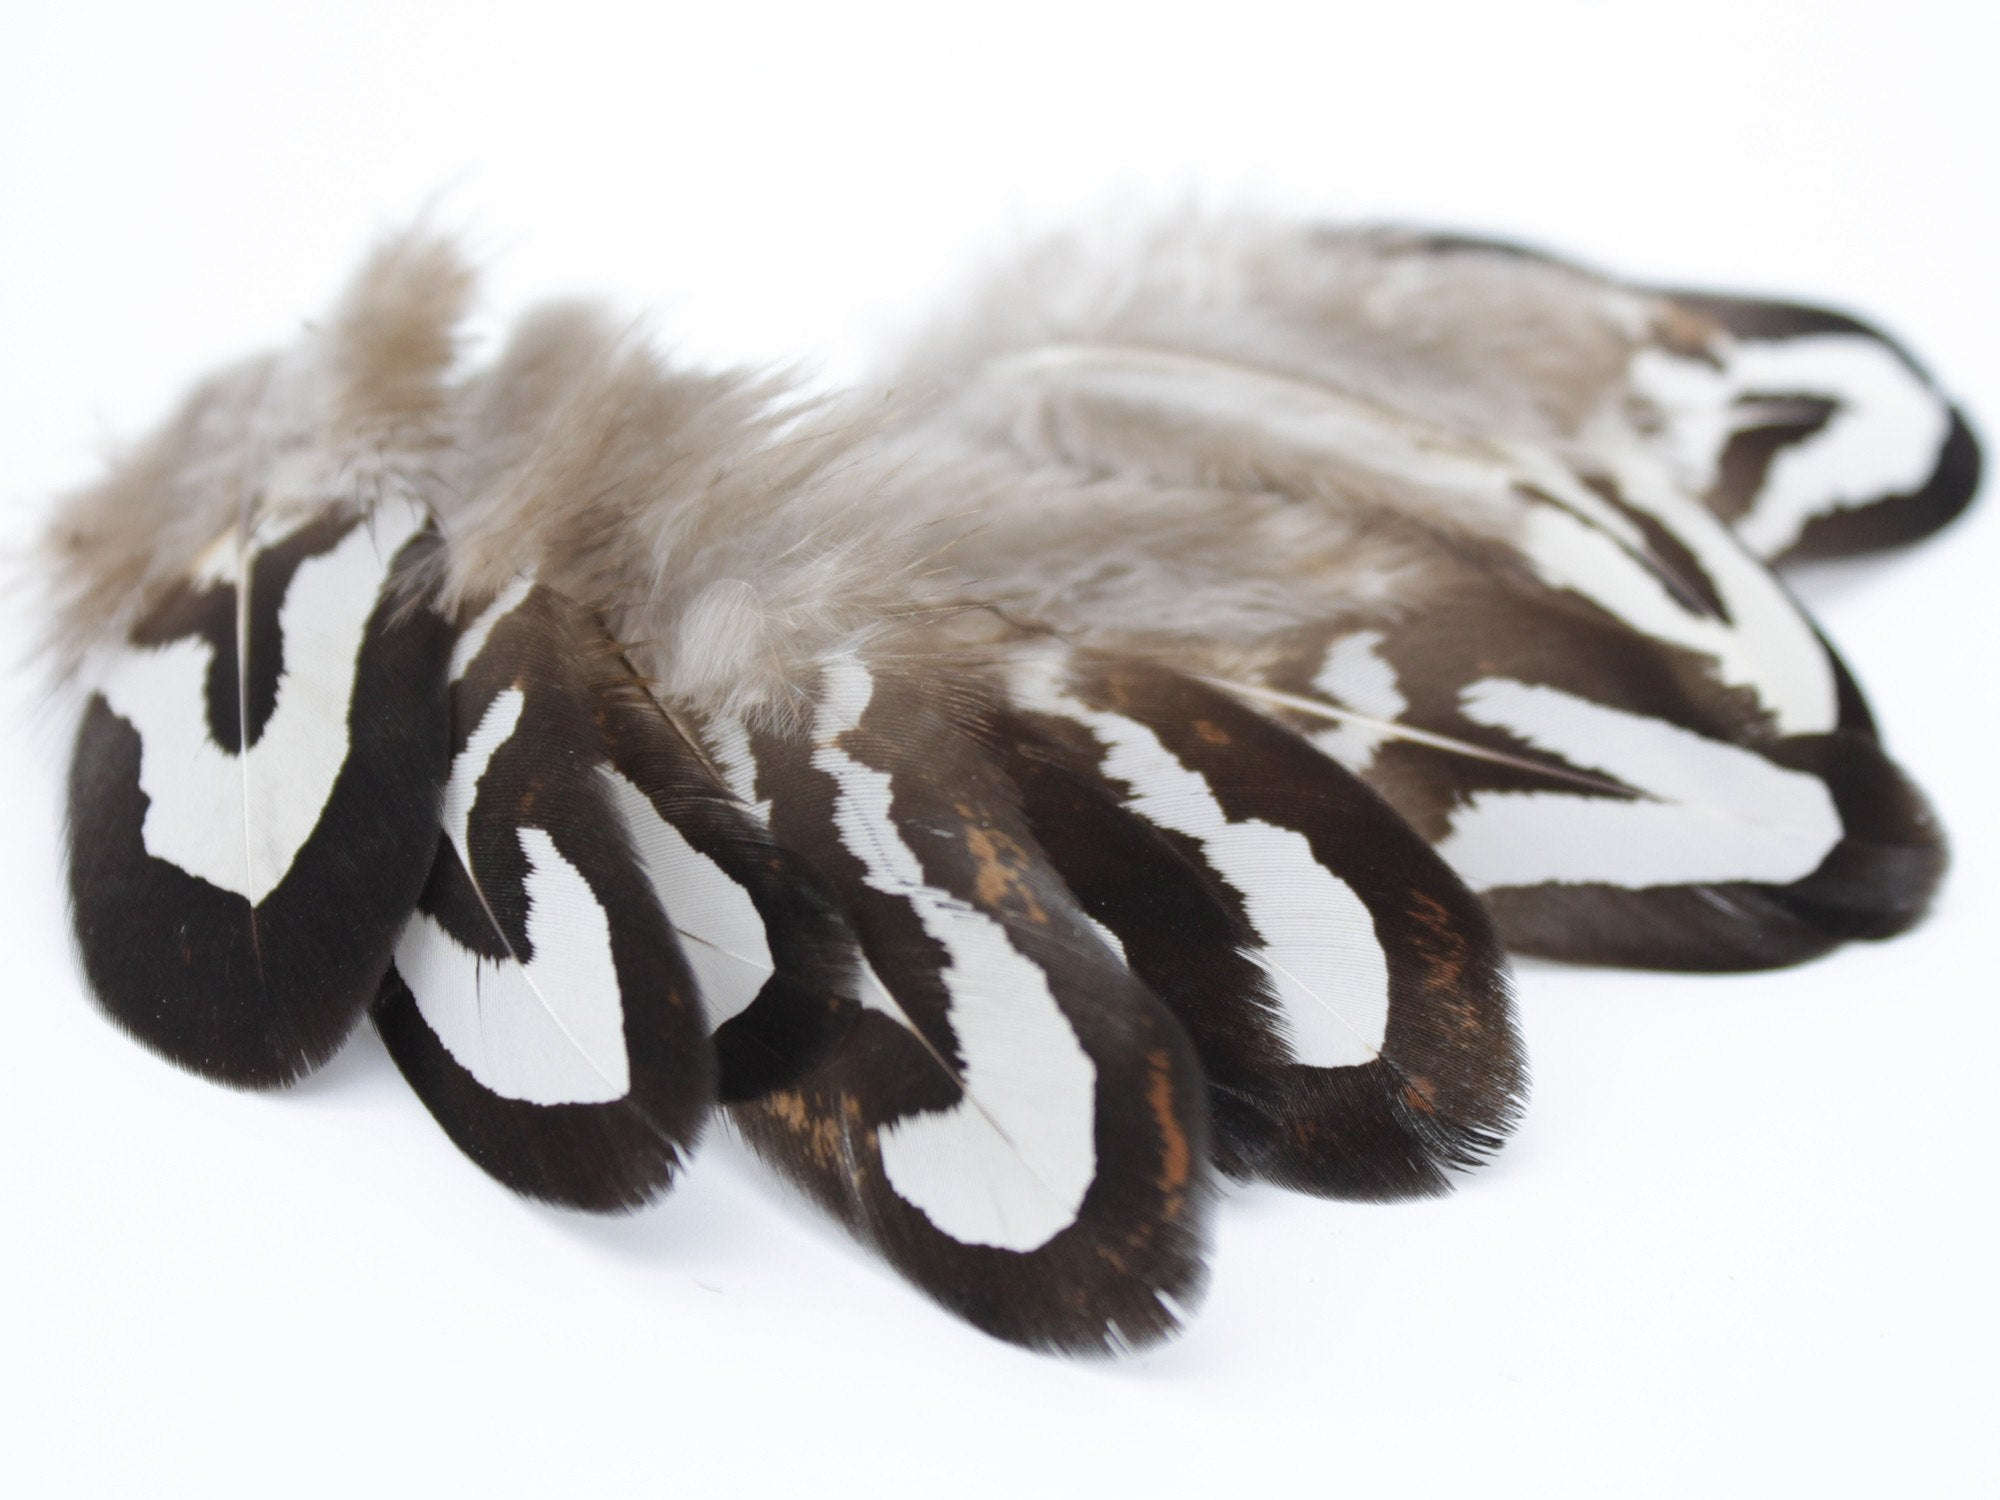 How to clean pheasant feathers - Reeves Venery Pheasant Black White Plumage Feathers